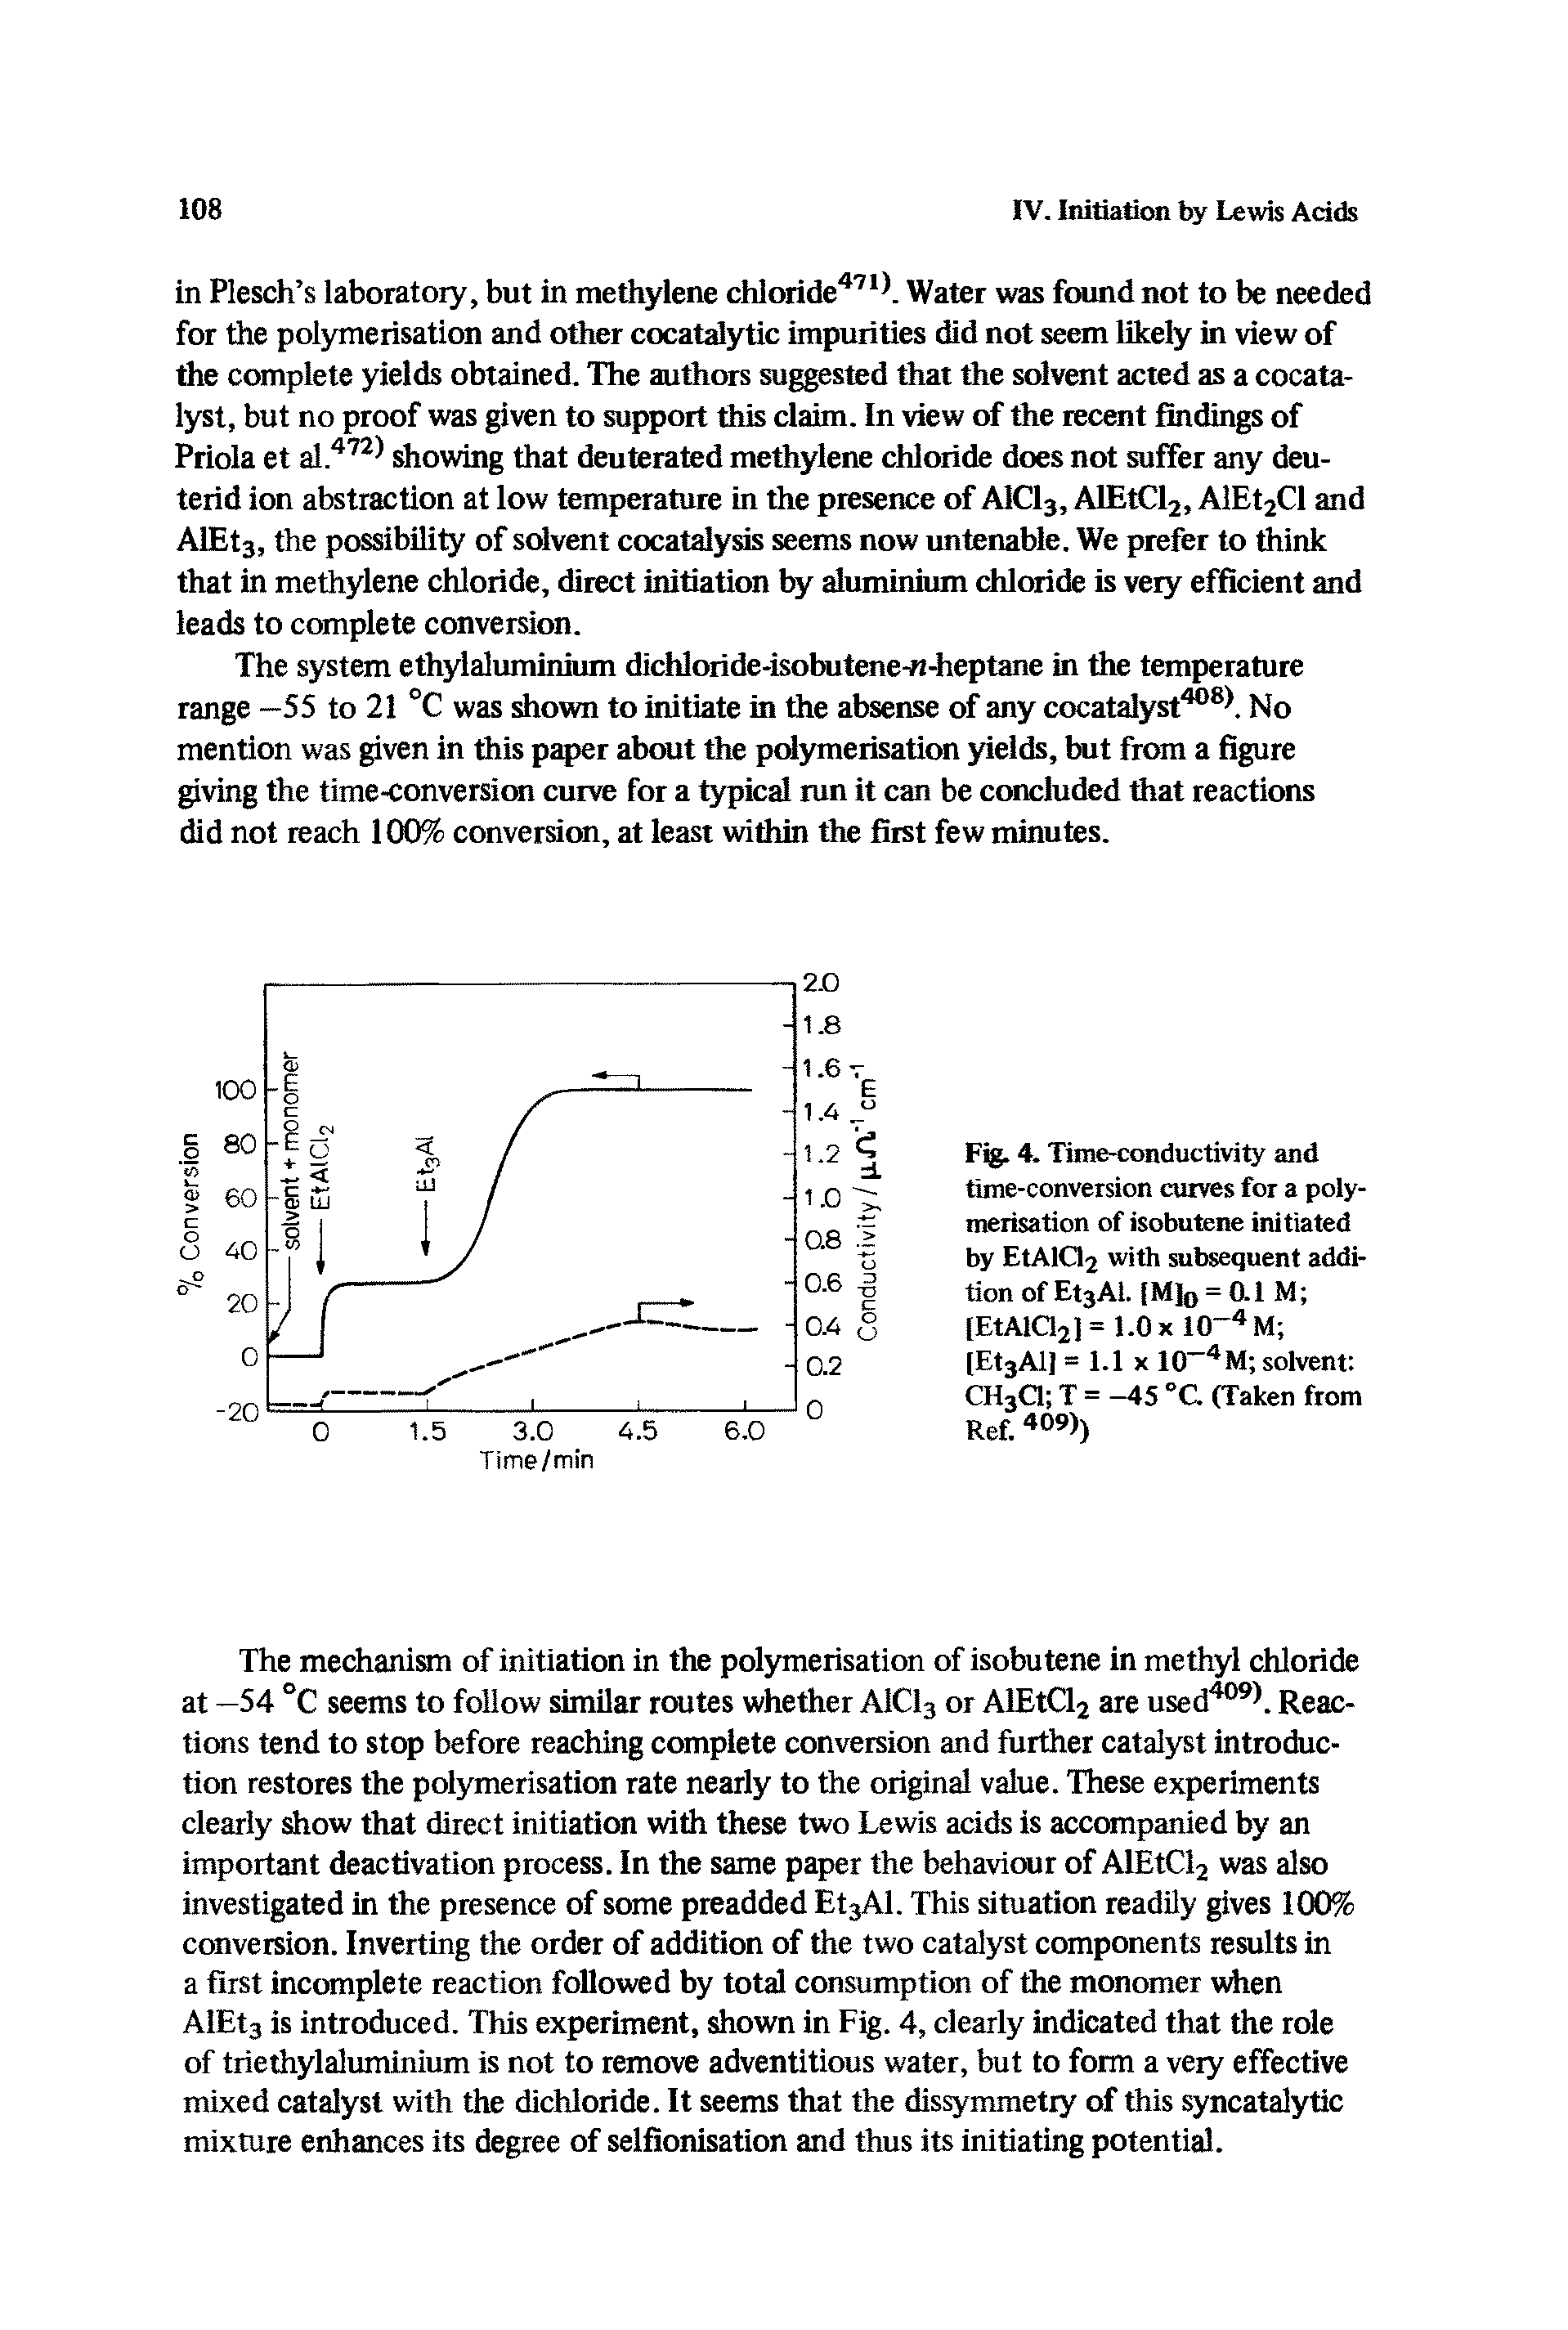 "Fig. 4. <a href=""/info/conduction_time"">Time-conductivity</a> and time-conversion curves for a polymerisation of isobutene initiated by EtAlQ2 with subsequent addition of EtsAl. [MJq = 0.1 M (EtAia2l = l.Ox lO- M (EtsAlJ = 1.1 X 10 M solvent CHaQ T = -45 C (Taken from Ref. 409))"